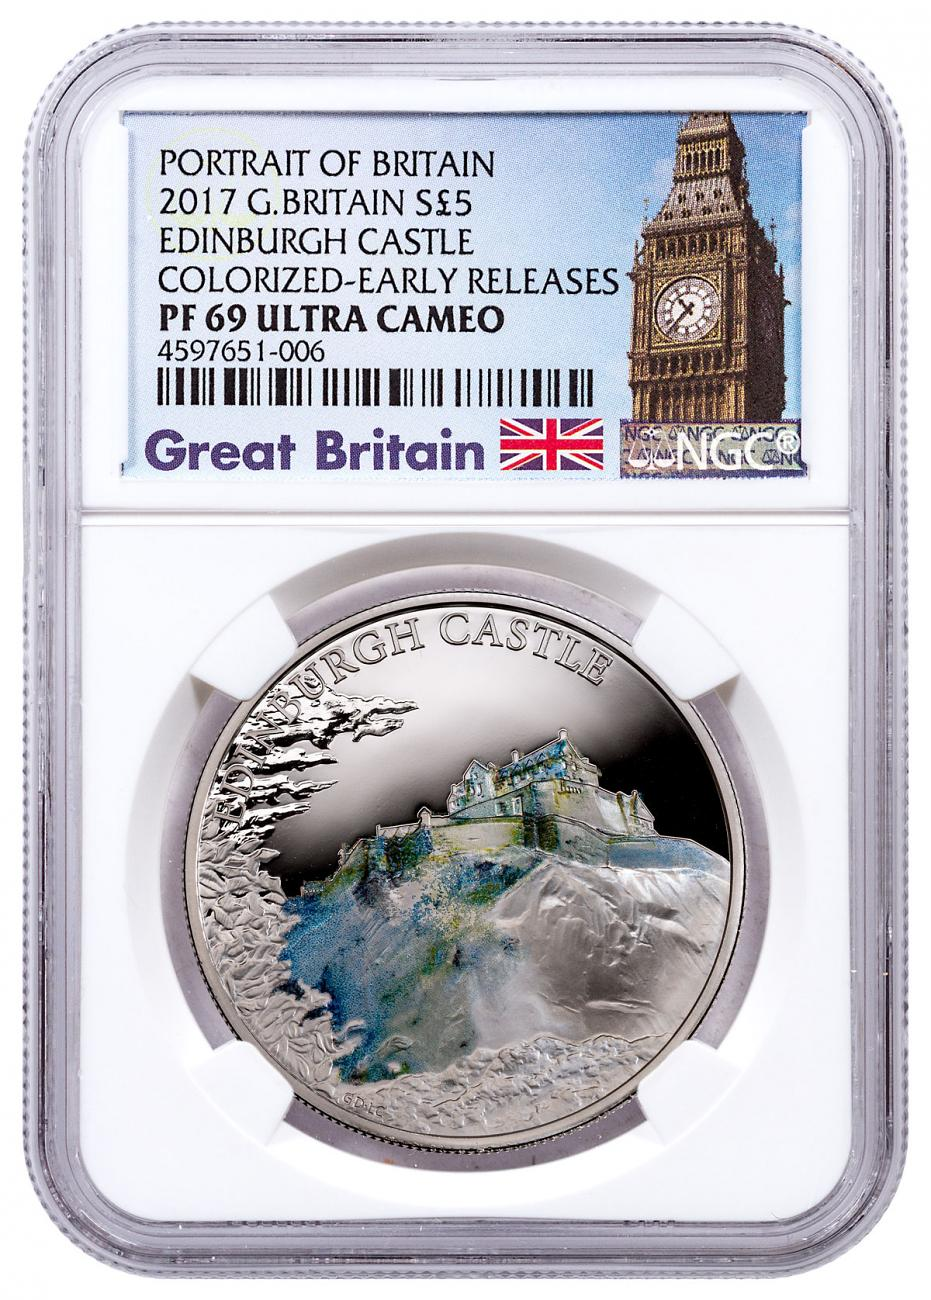 2017 Great Britain Portrait of Britain - Edinburgh Castle Silver Colorized Proof £5 Coin NGC PF69 UC ER Exclusive Big Ben Label